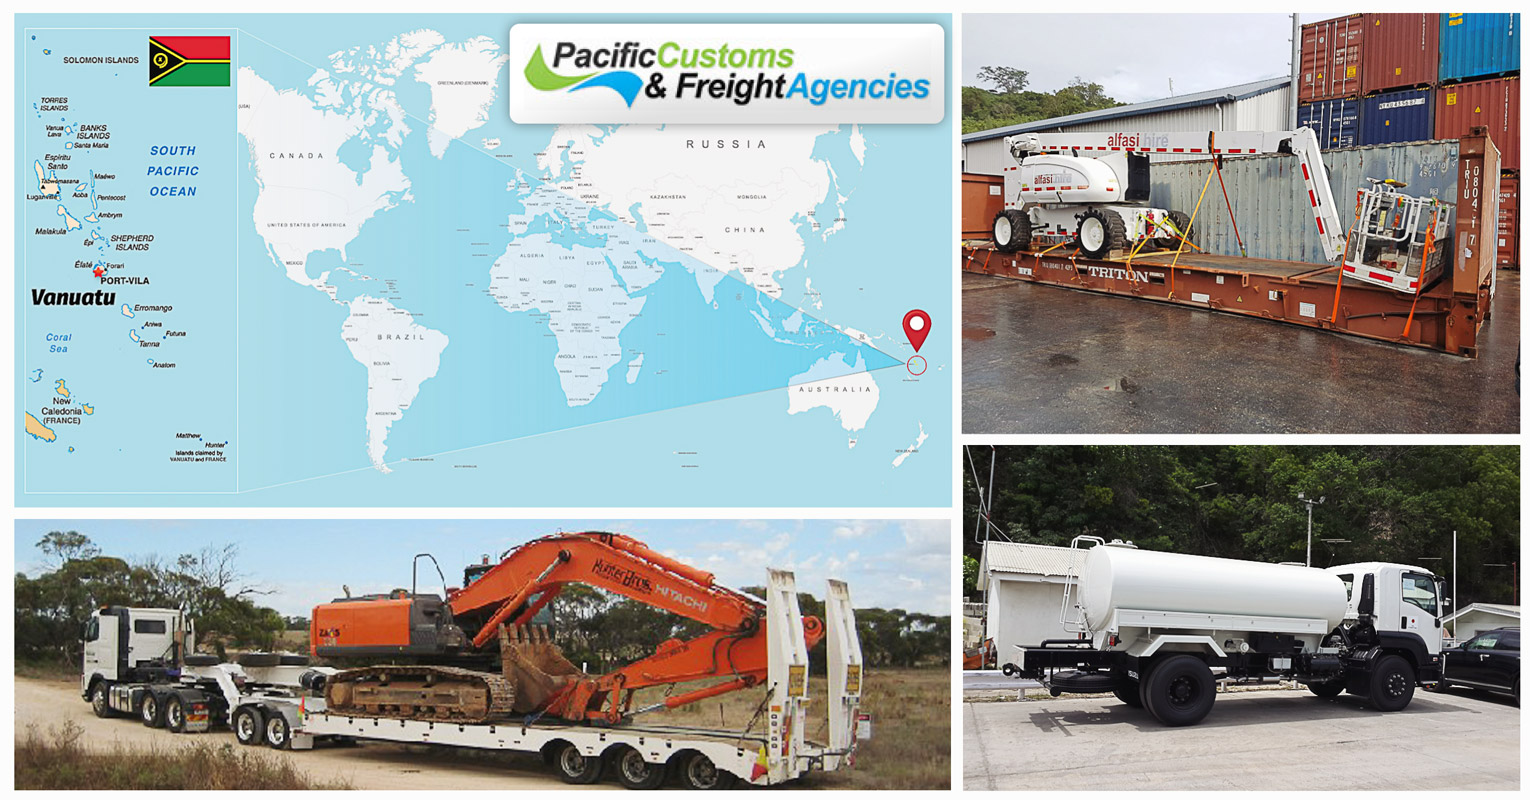 New member representing Vanuatu – Pacific Customs & Freight Agencies